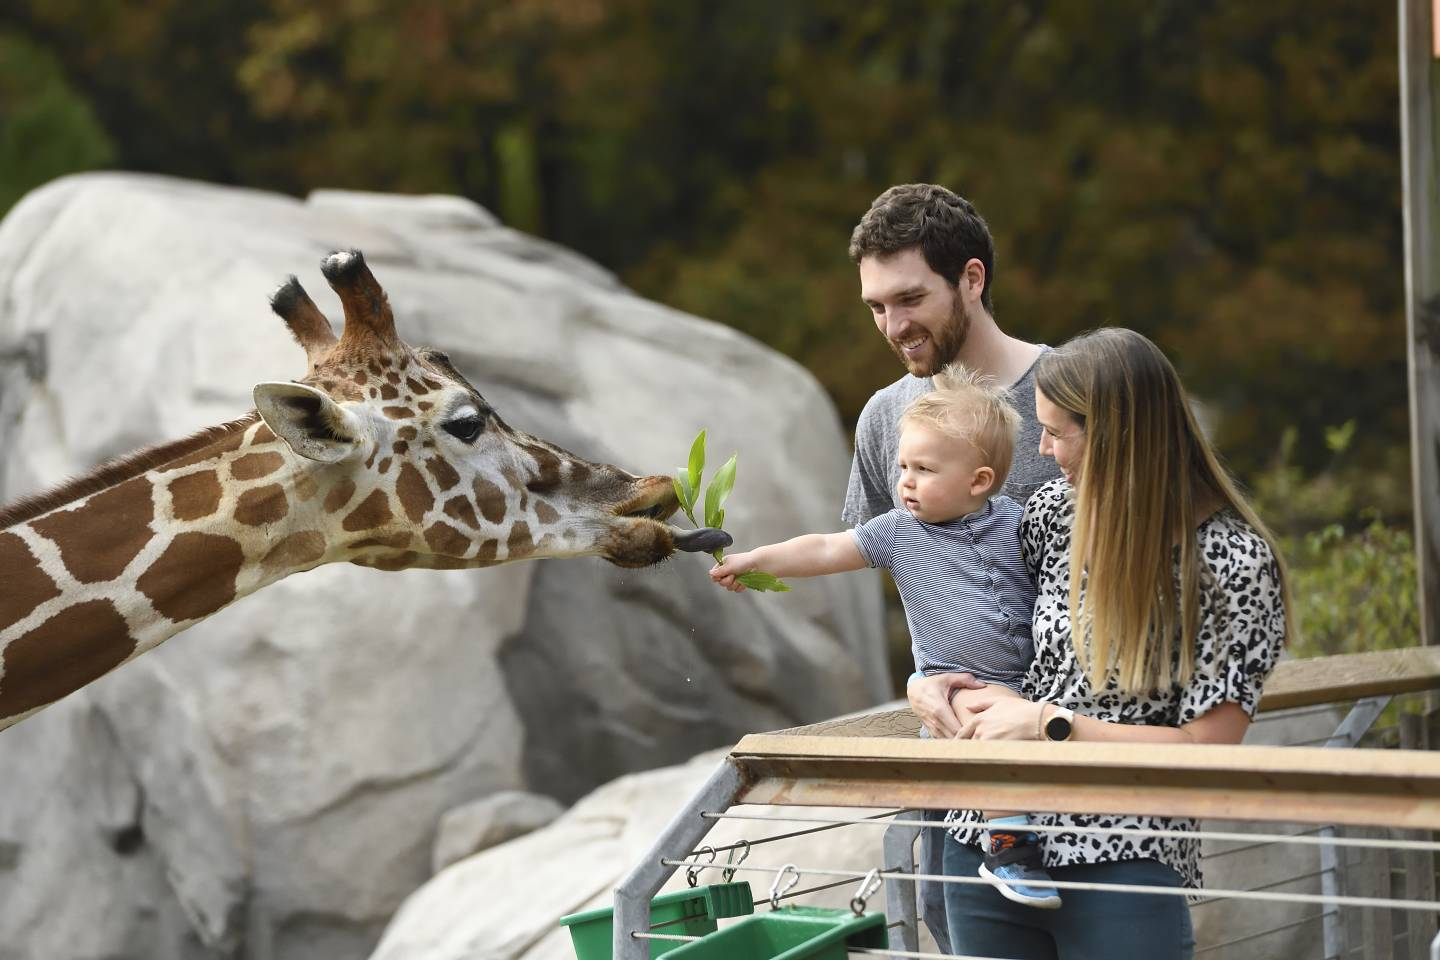 A baby feeds a giraffe